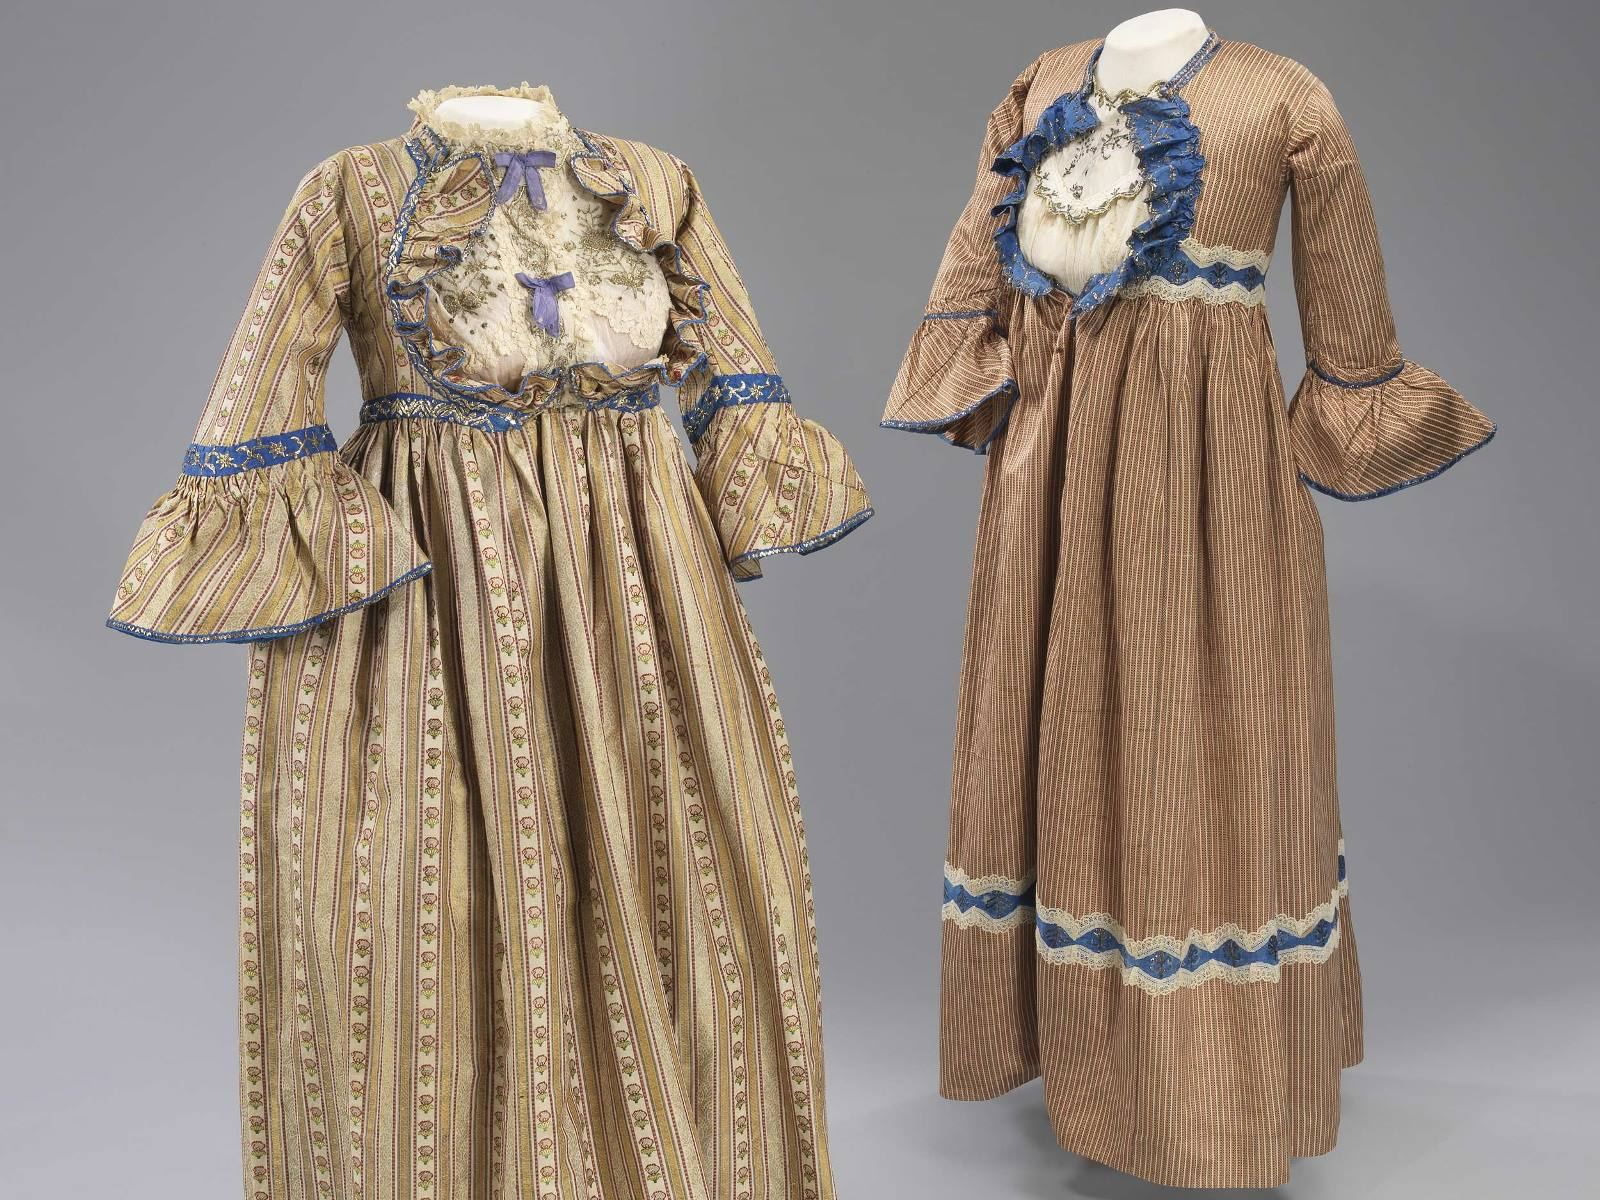 1880 Baghdad Wedding Dress (left) and 1881 Henna Dress (right), Image Courtesy of The Israel Musuem, Jerusalem